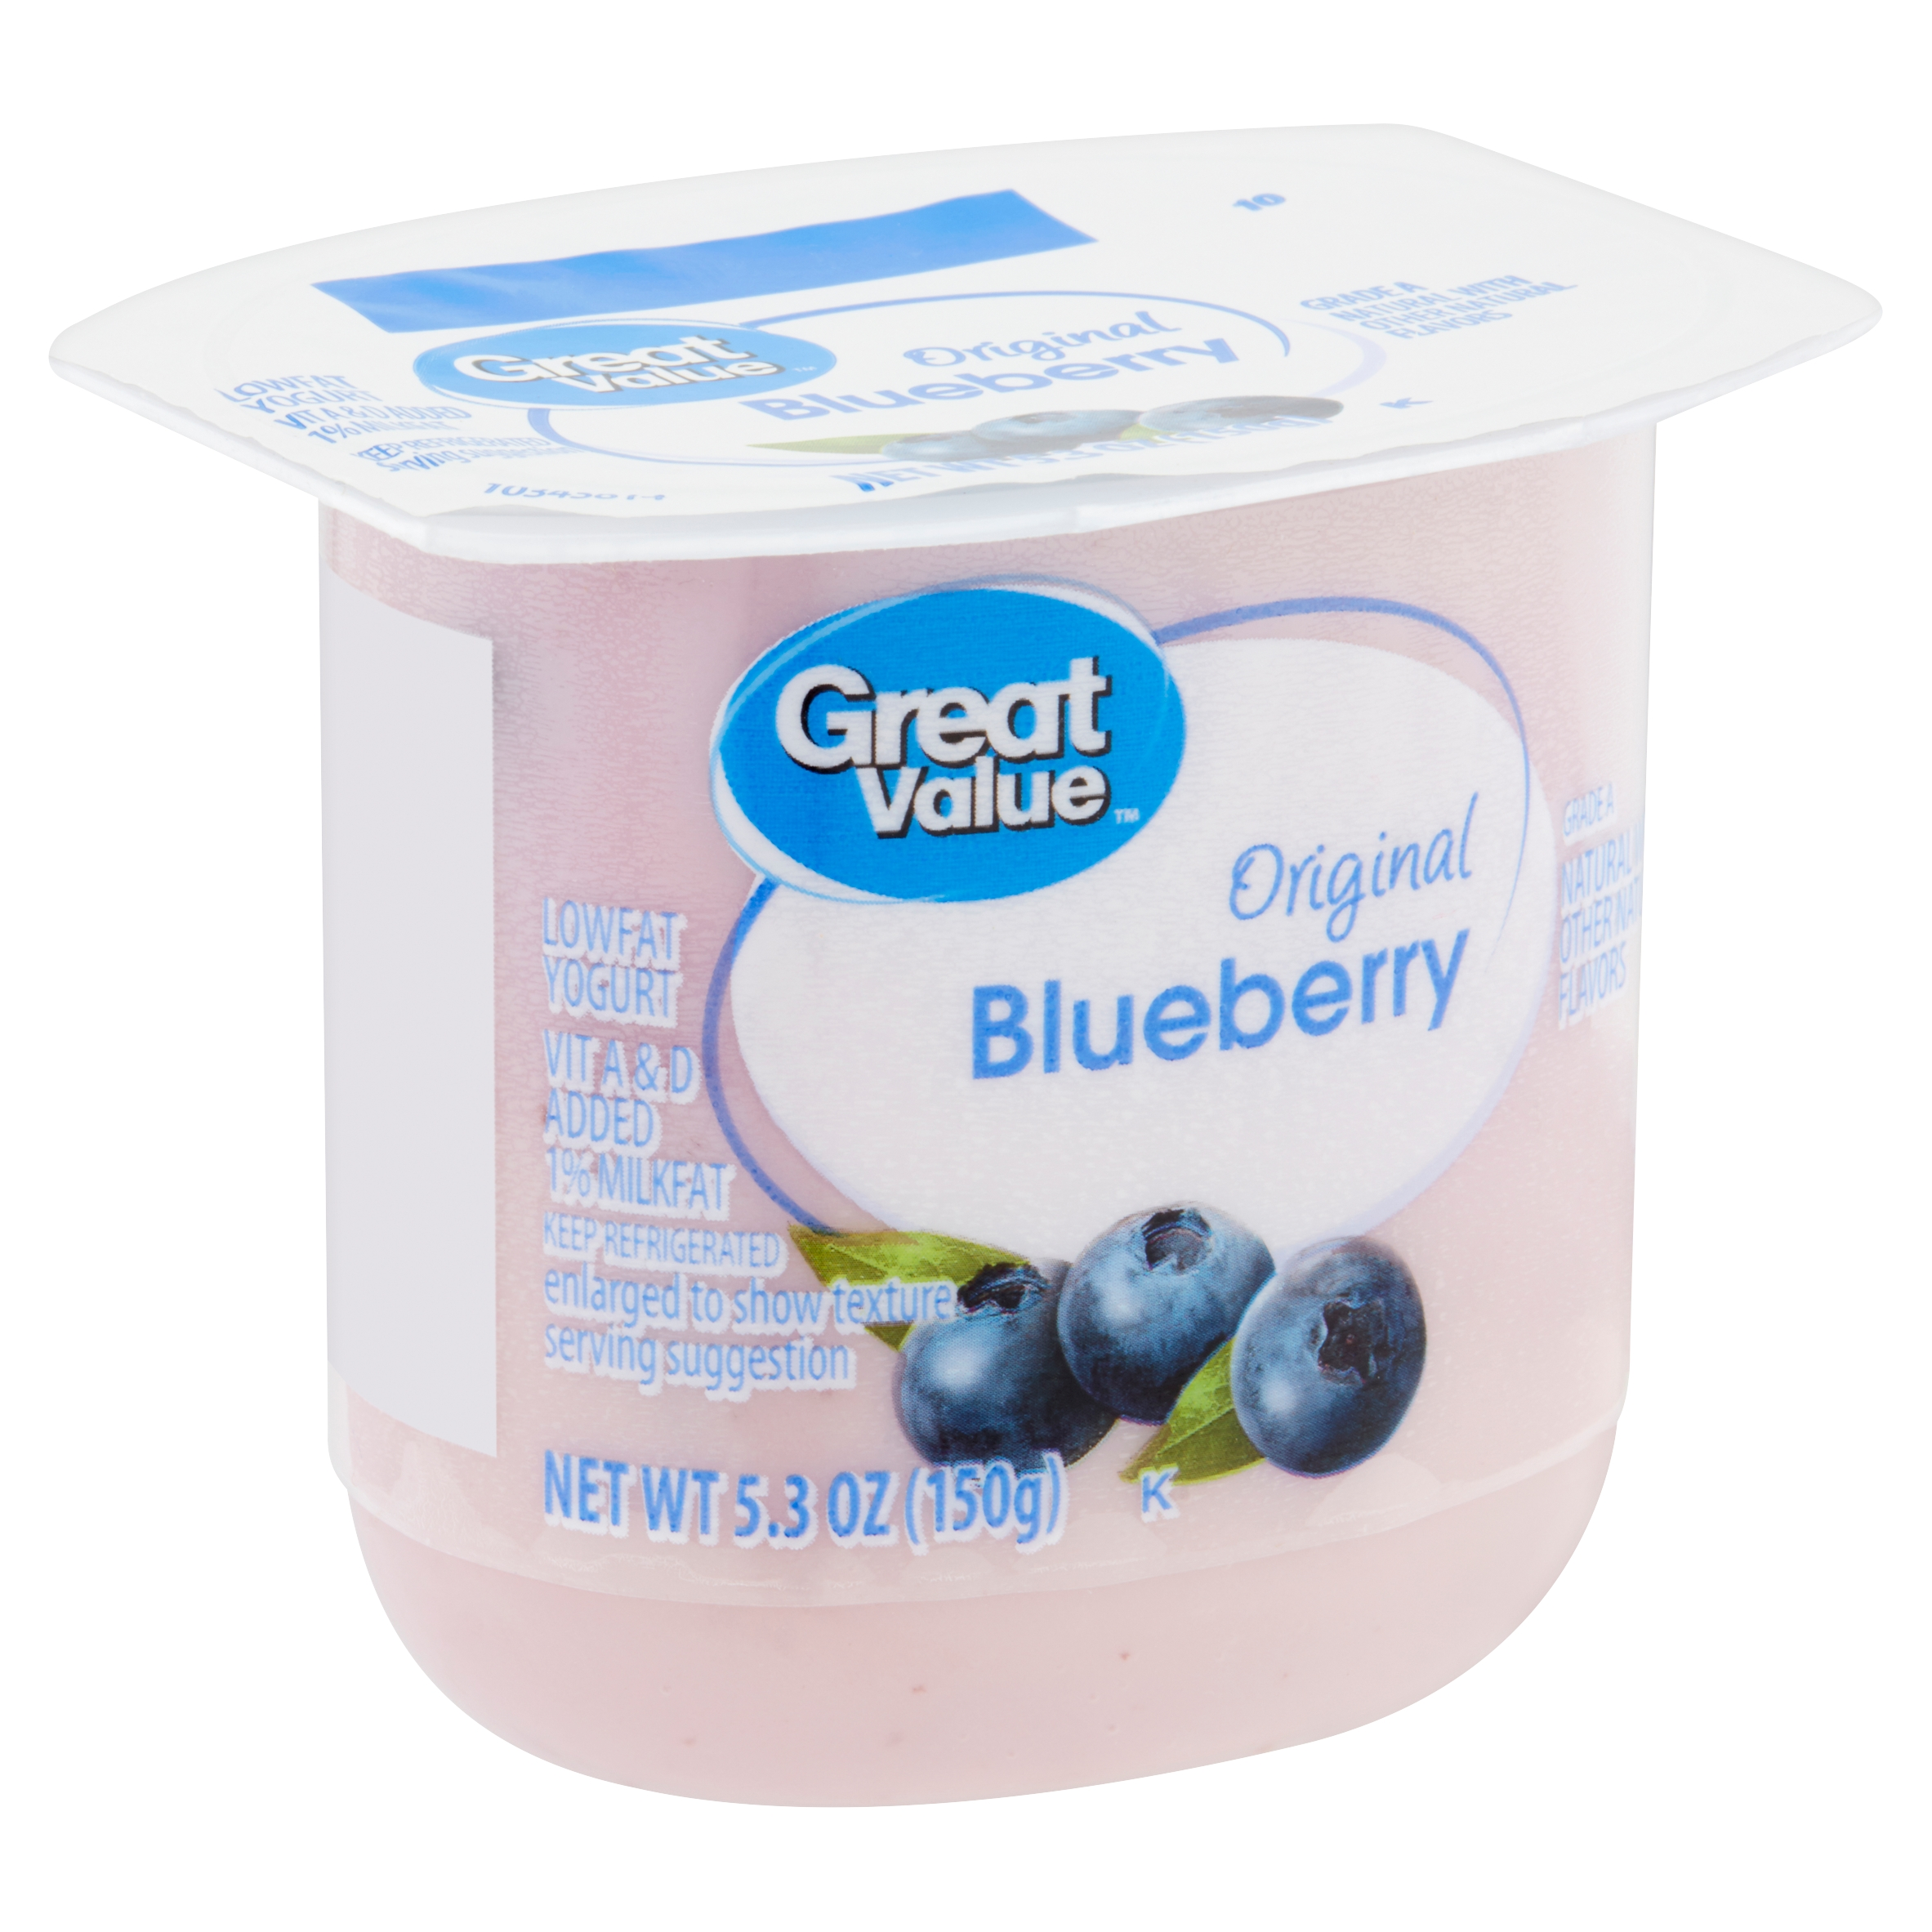 Great Value Original Blueberry Lowfat Yogurt, 5.3 oz